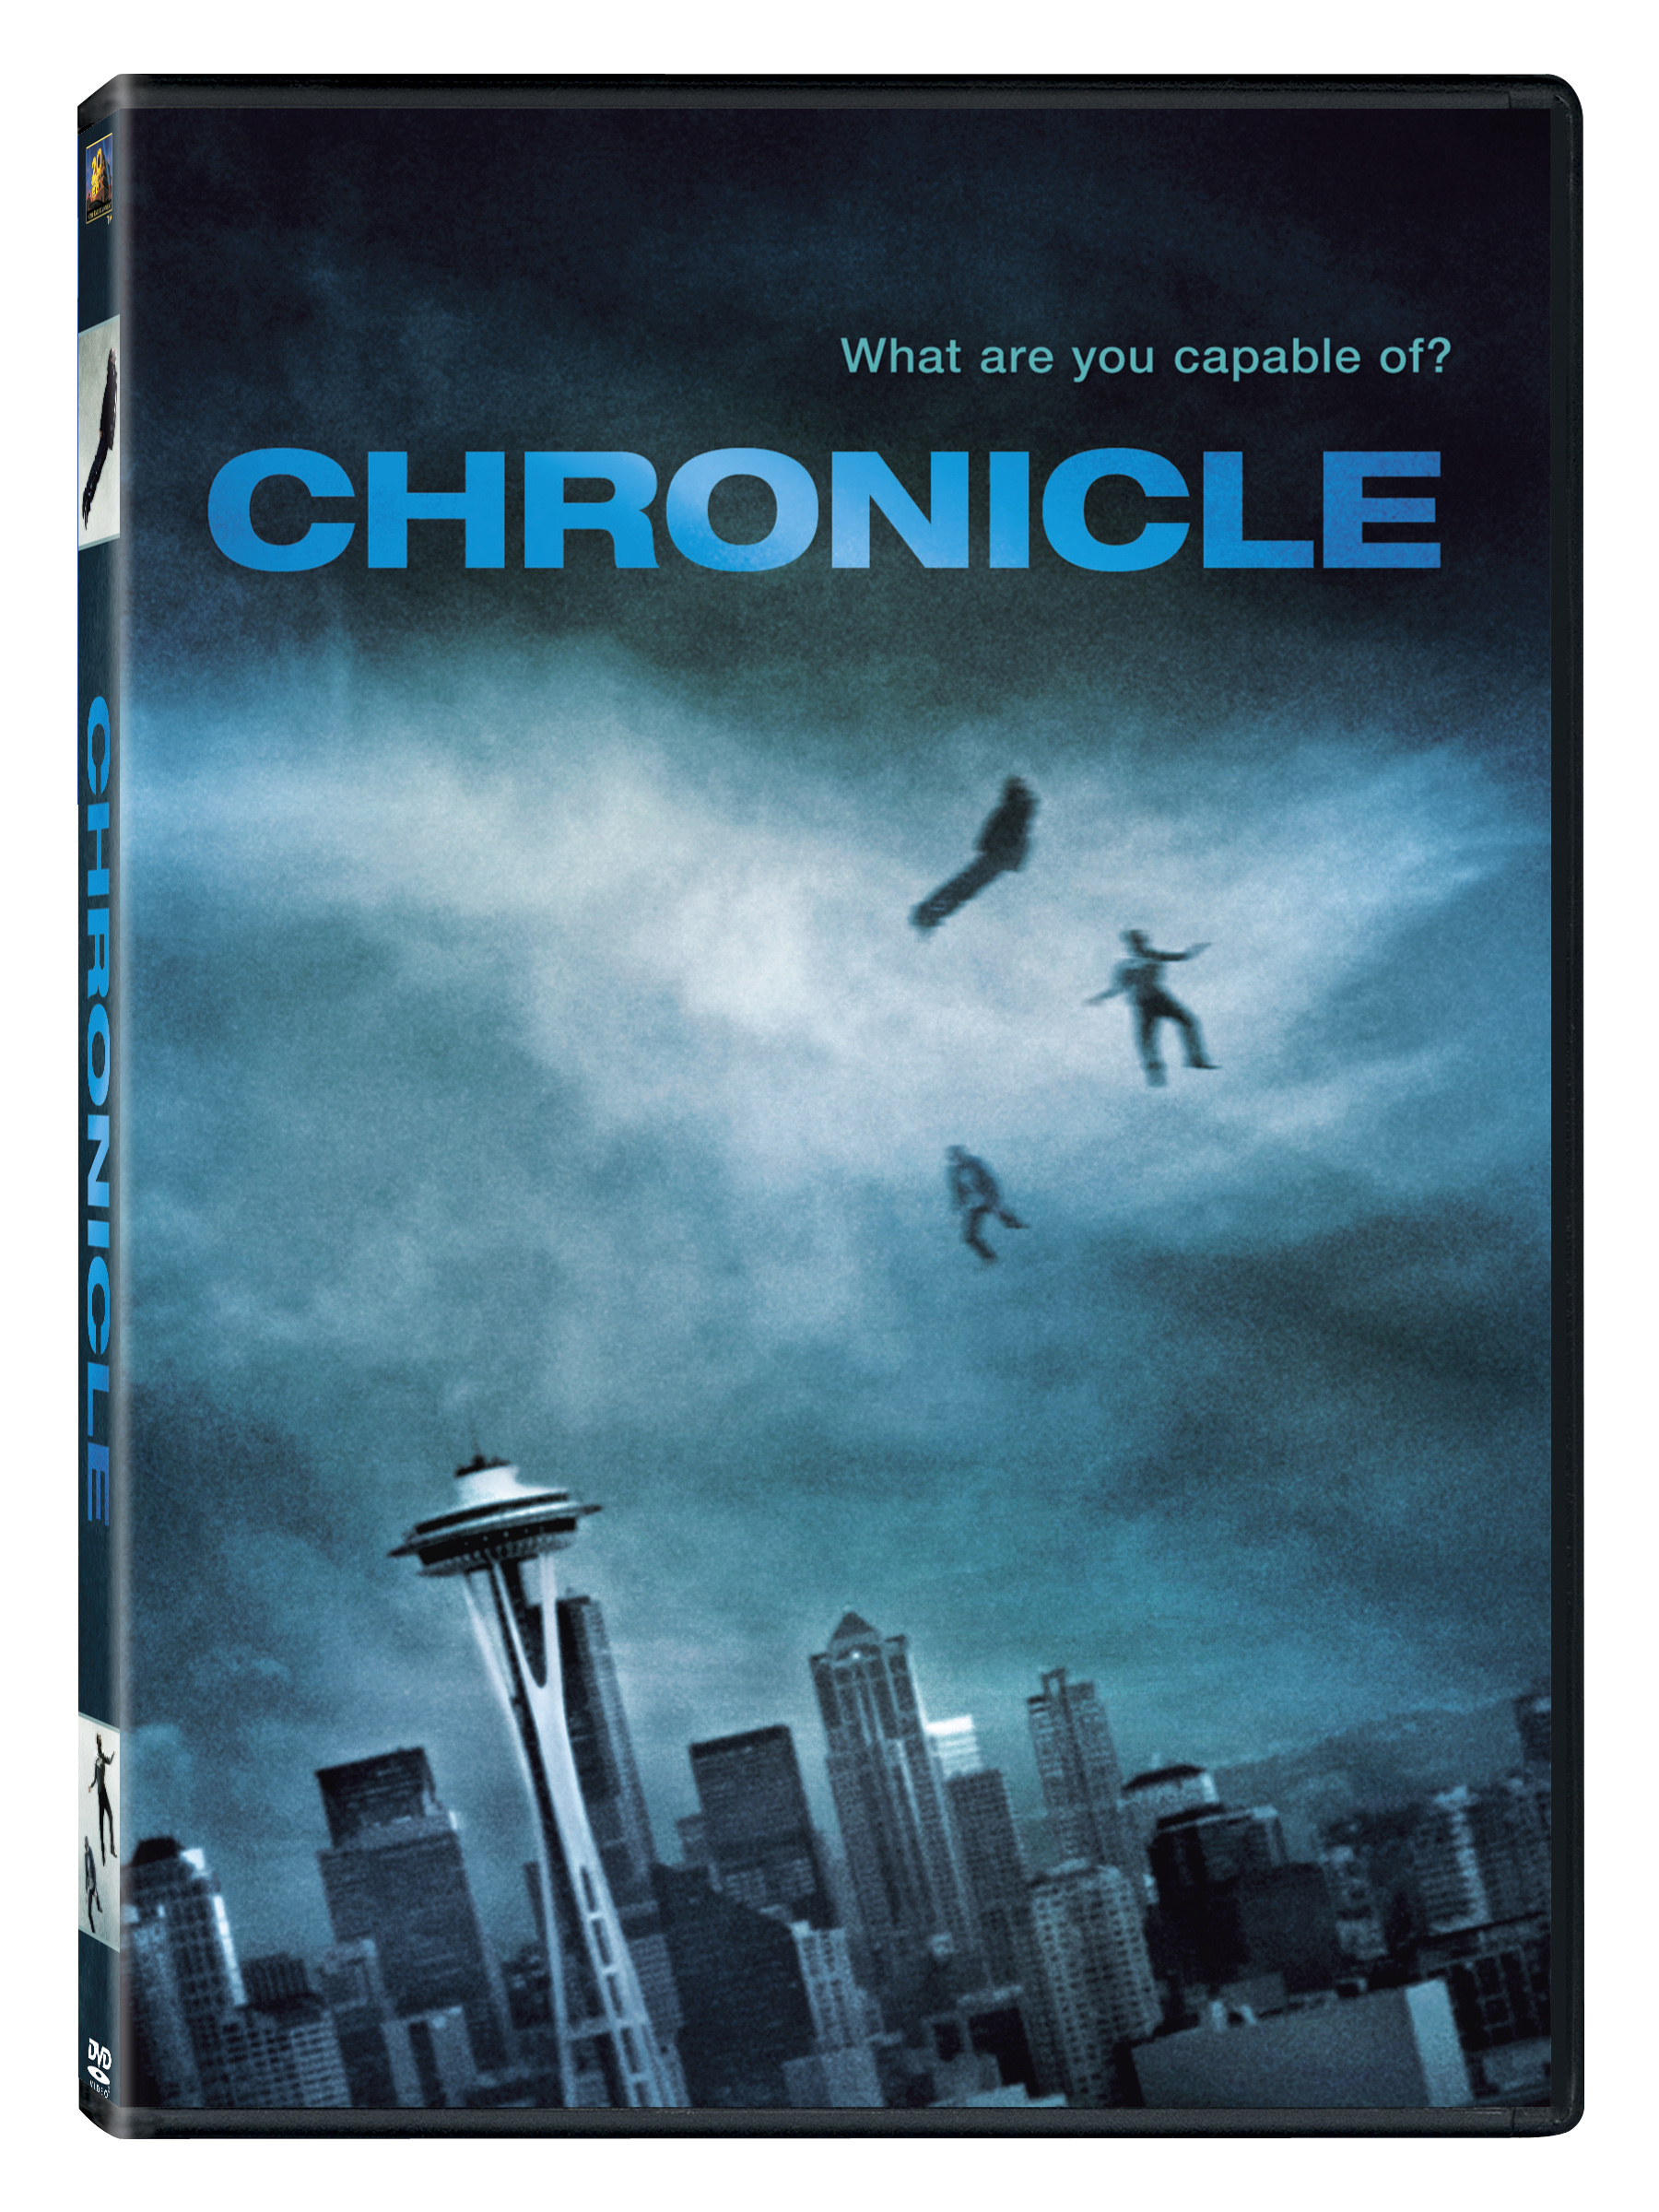 Chronicle Film Wallpapers - Wallpaper Cave